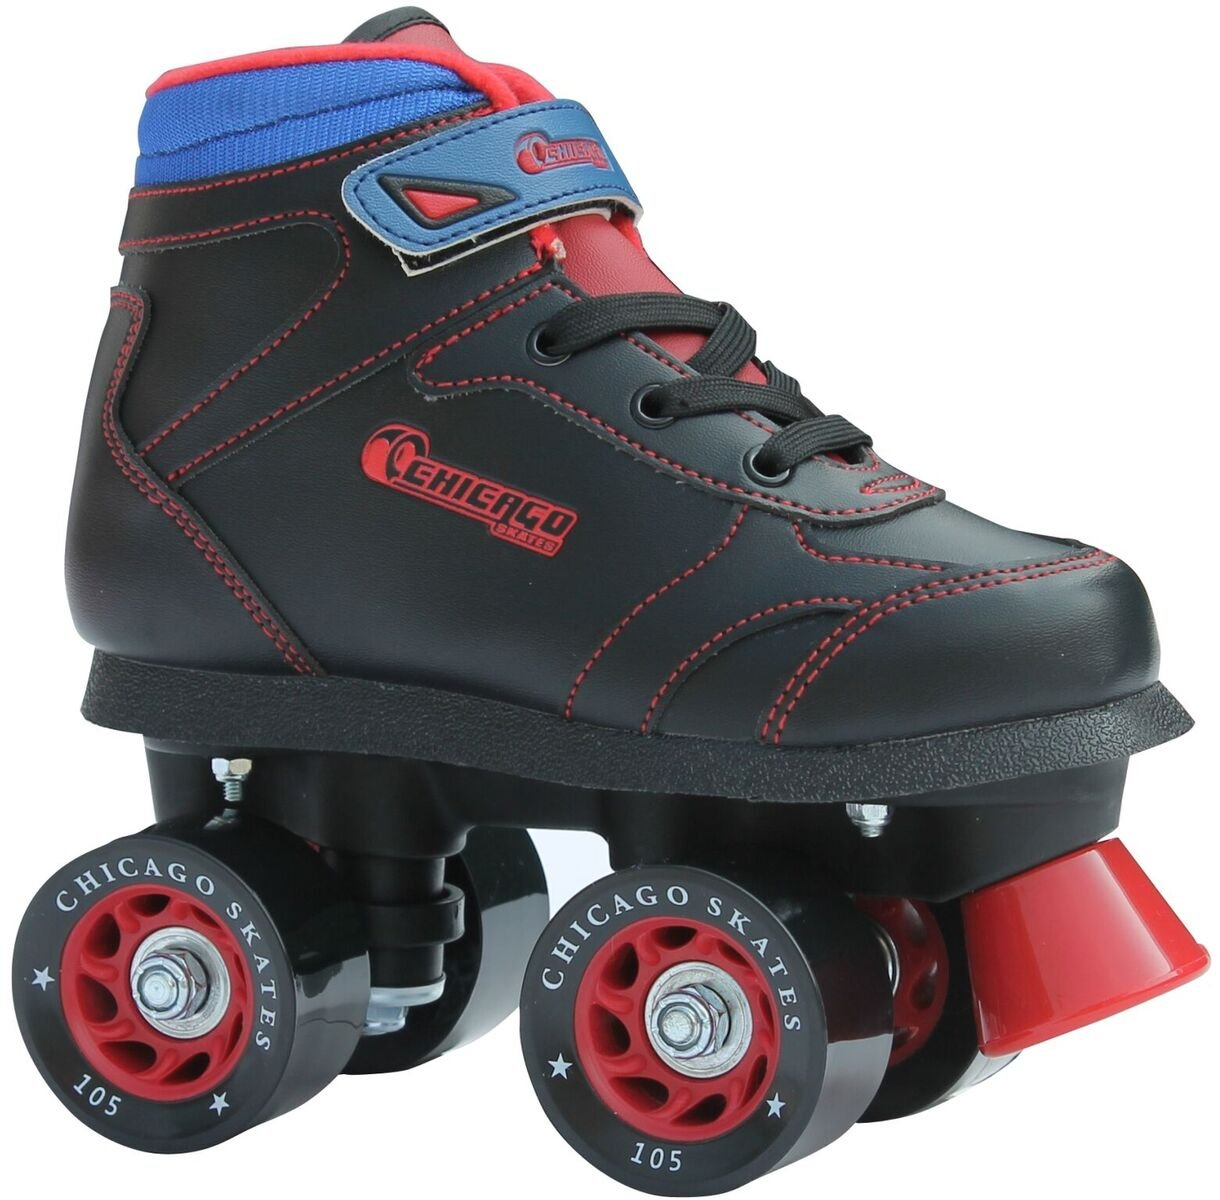 Chicago Boys Sidewalk Roller Skate – Black Youth Quad Skates